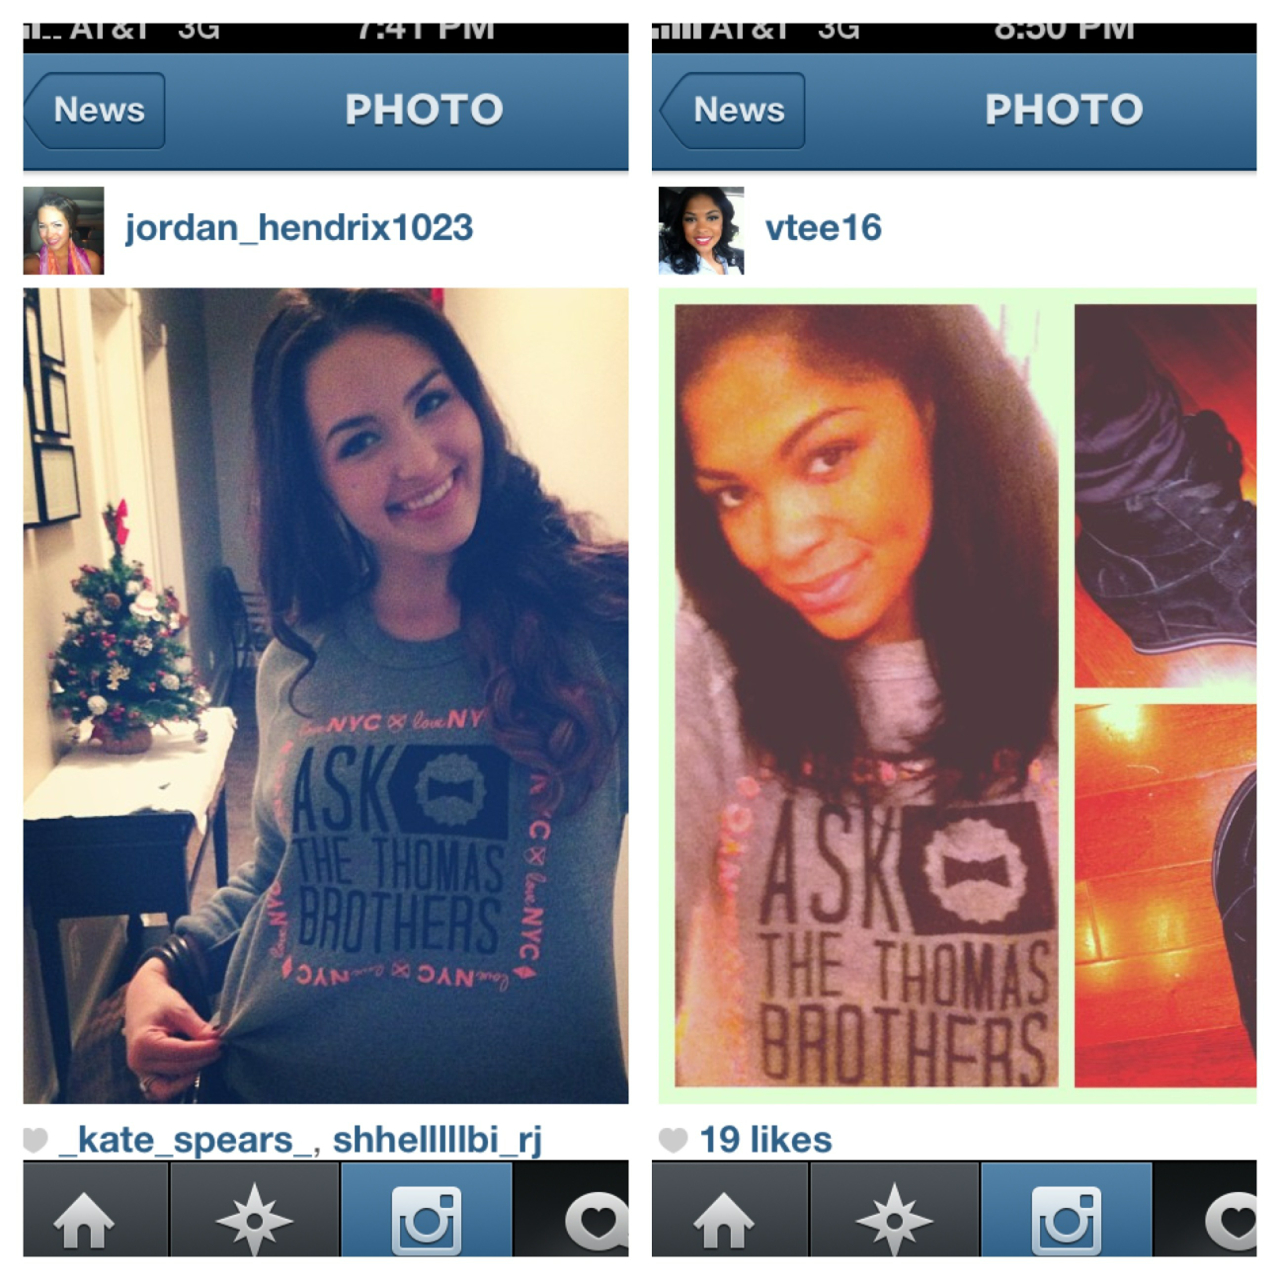 2 pics we've received today from some amazing people supporting #loveNYC! Lets keep spreading the word, and if you want, take a pic of yourself and the sweatshirt/tee and we'll RT or post it!   #loveNYC #hurricanesandy #Brooklyn #Queens #Manhattan #StatenIsland #Rockaway #fashion #instafashion #fashiongram #fashiondairies #igers #igersofbr #igaddict #bestoftheday #coasttocoastchallenge #fallfashion #love #pretty #GITD #ATTB #NYC #photooftheday #ootd #ootmagazine #BandBrand #sweatshirt #fallapparel #winterapparel